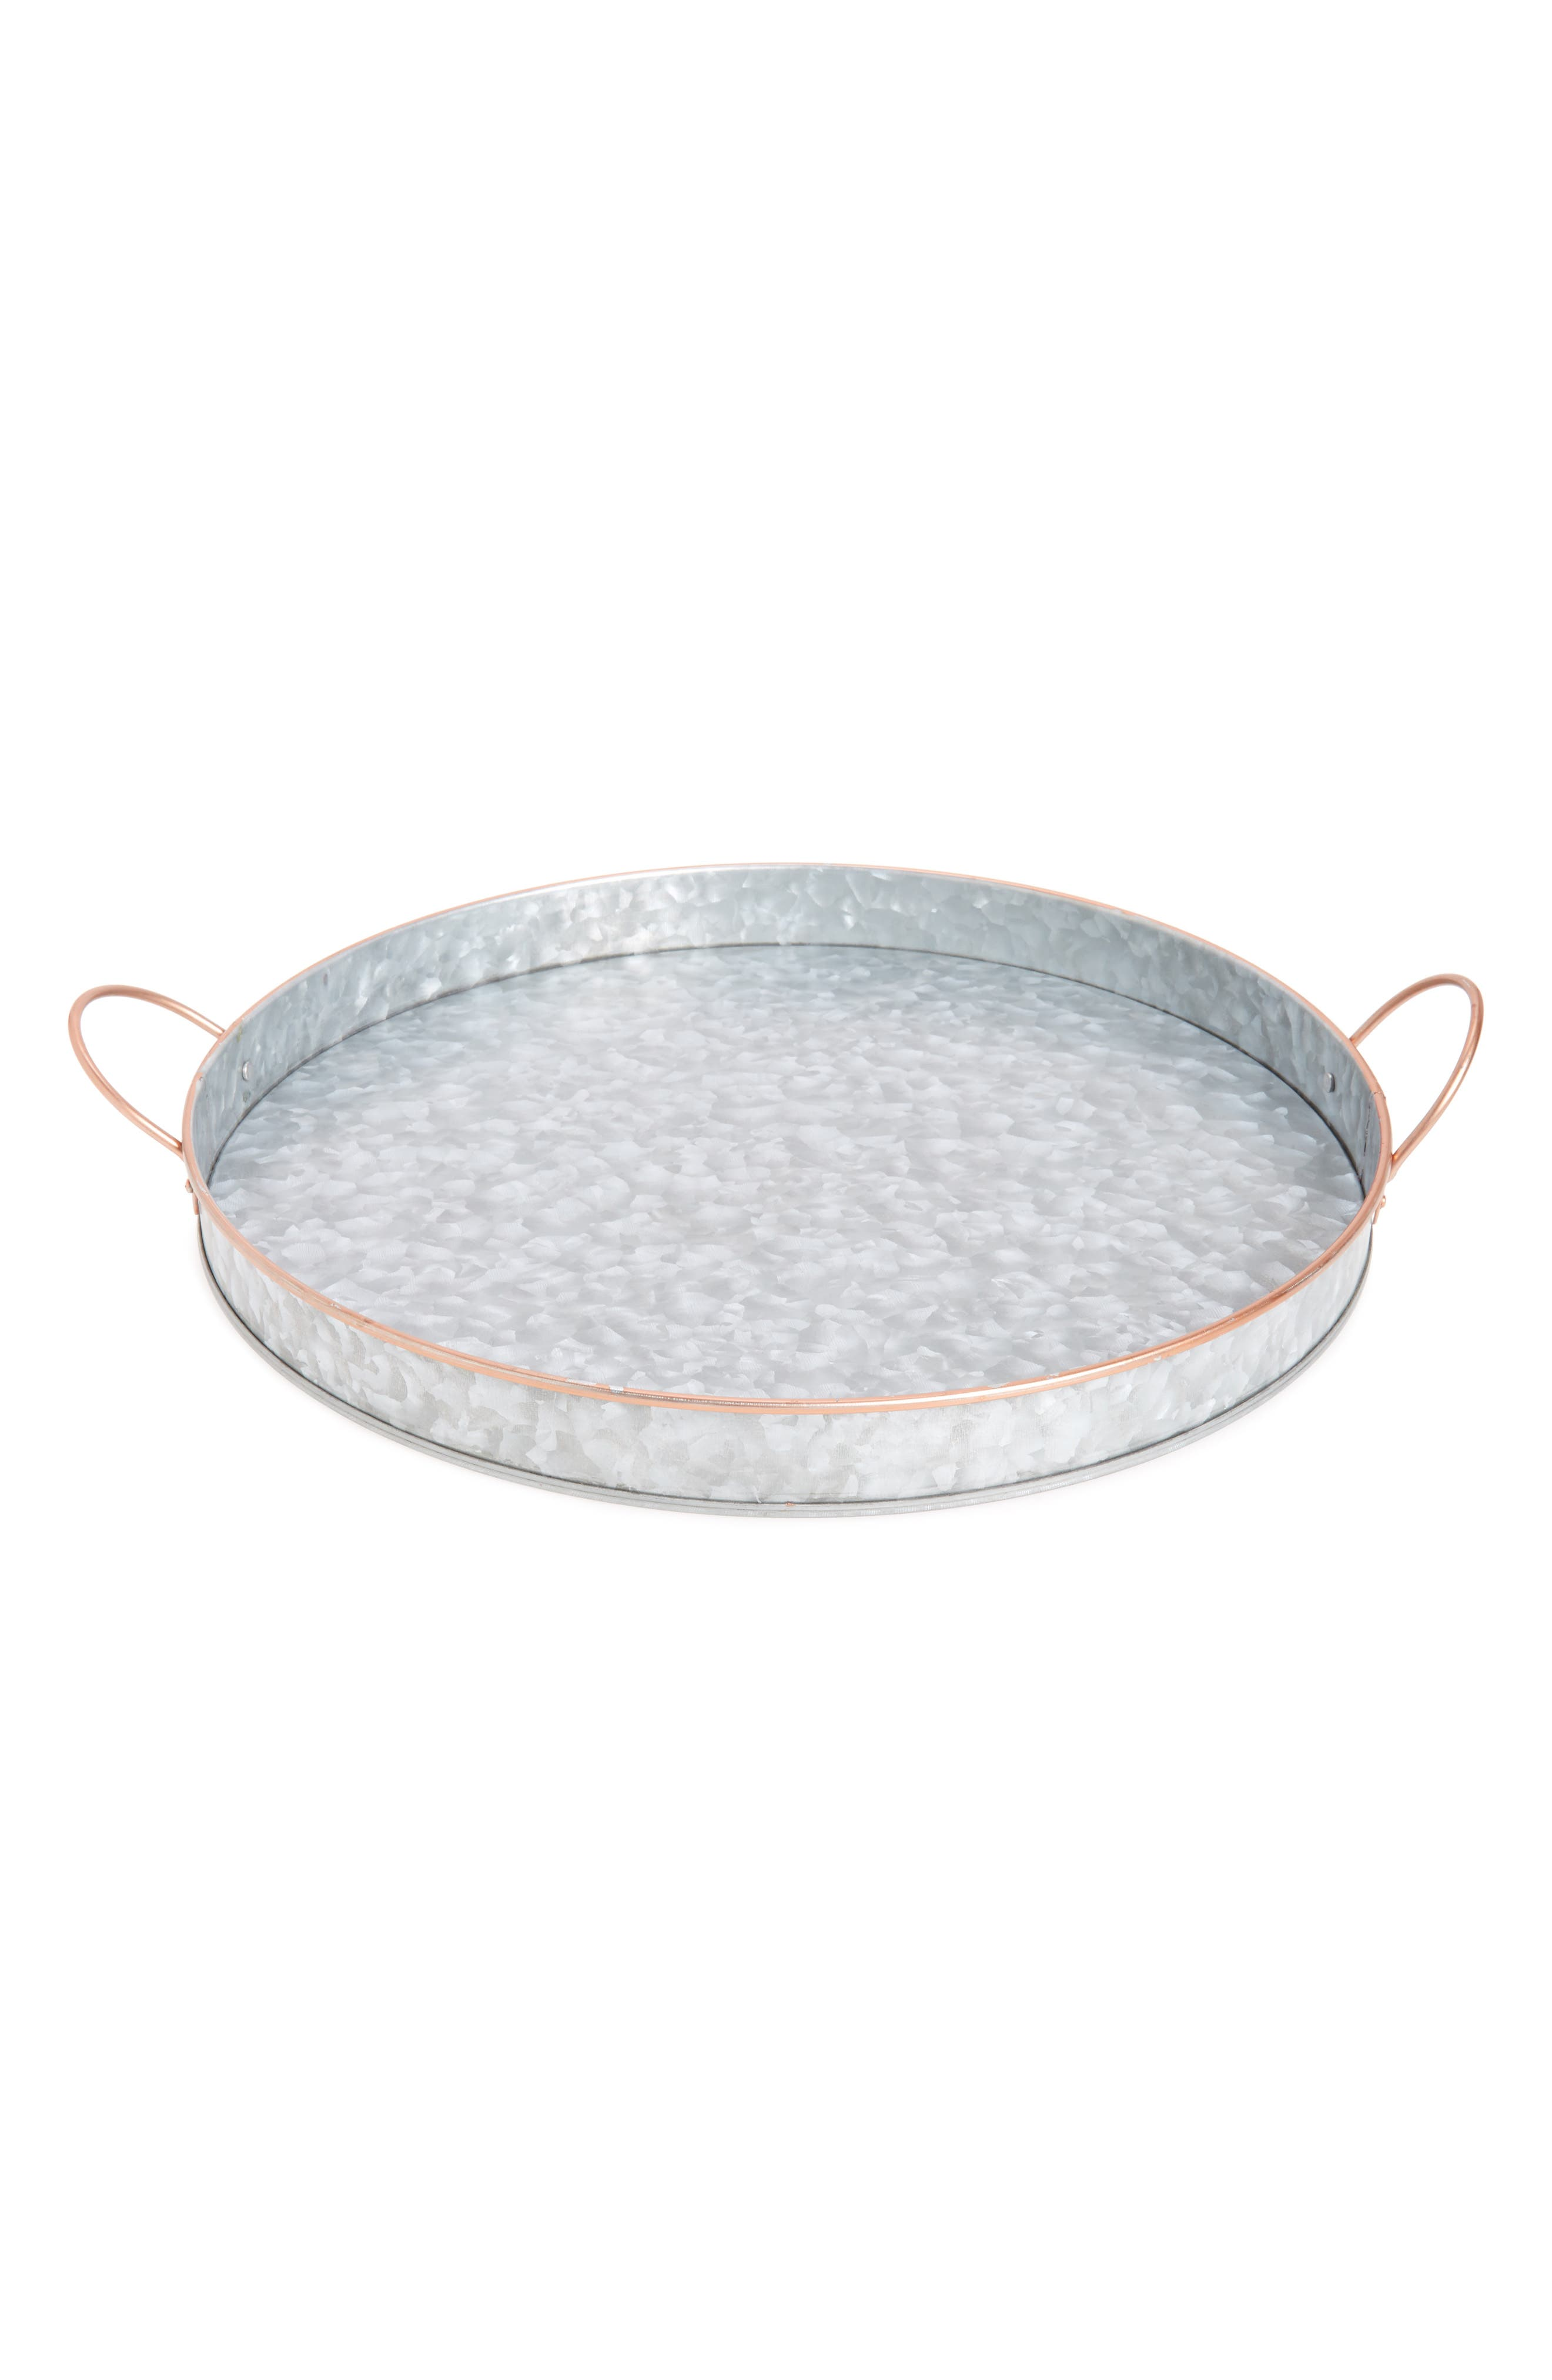 Thirstystone Galvanized Steel Tray